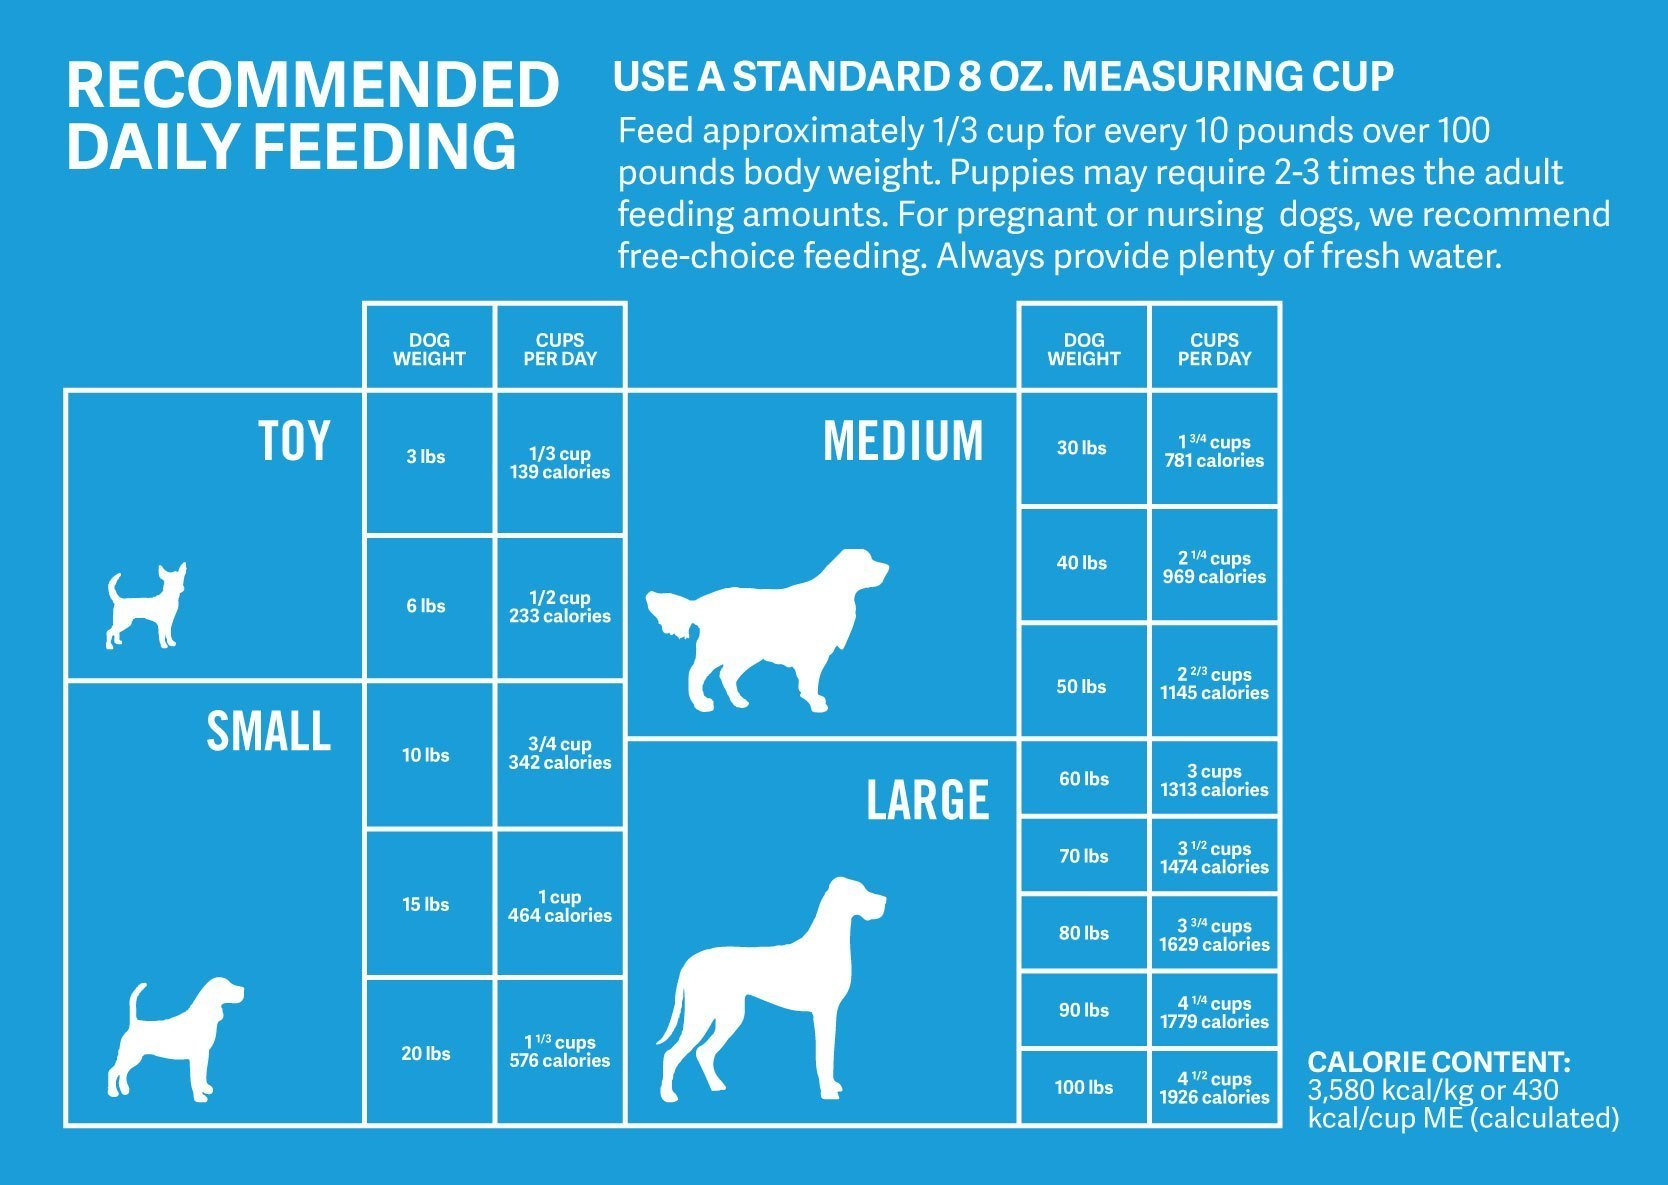 Recommended feeding guide